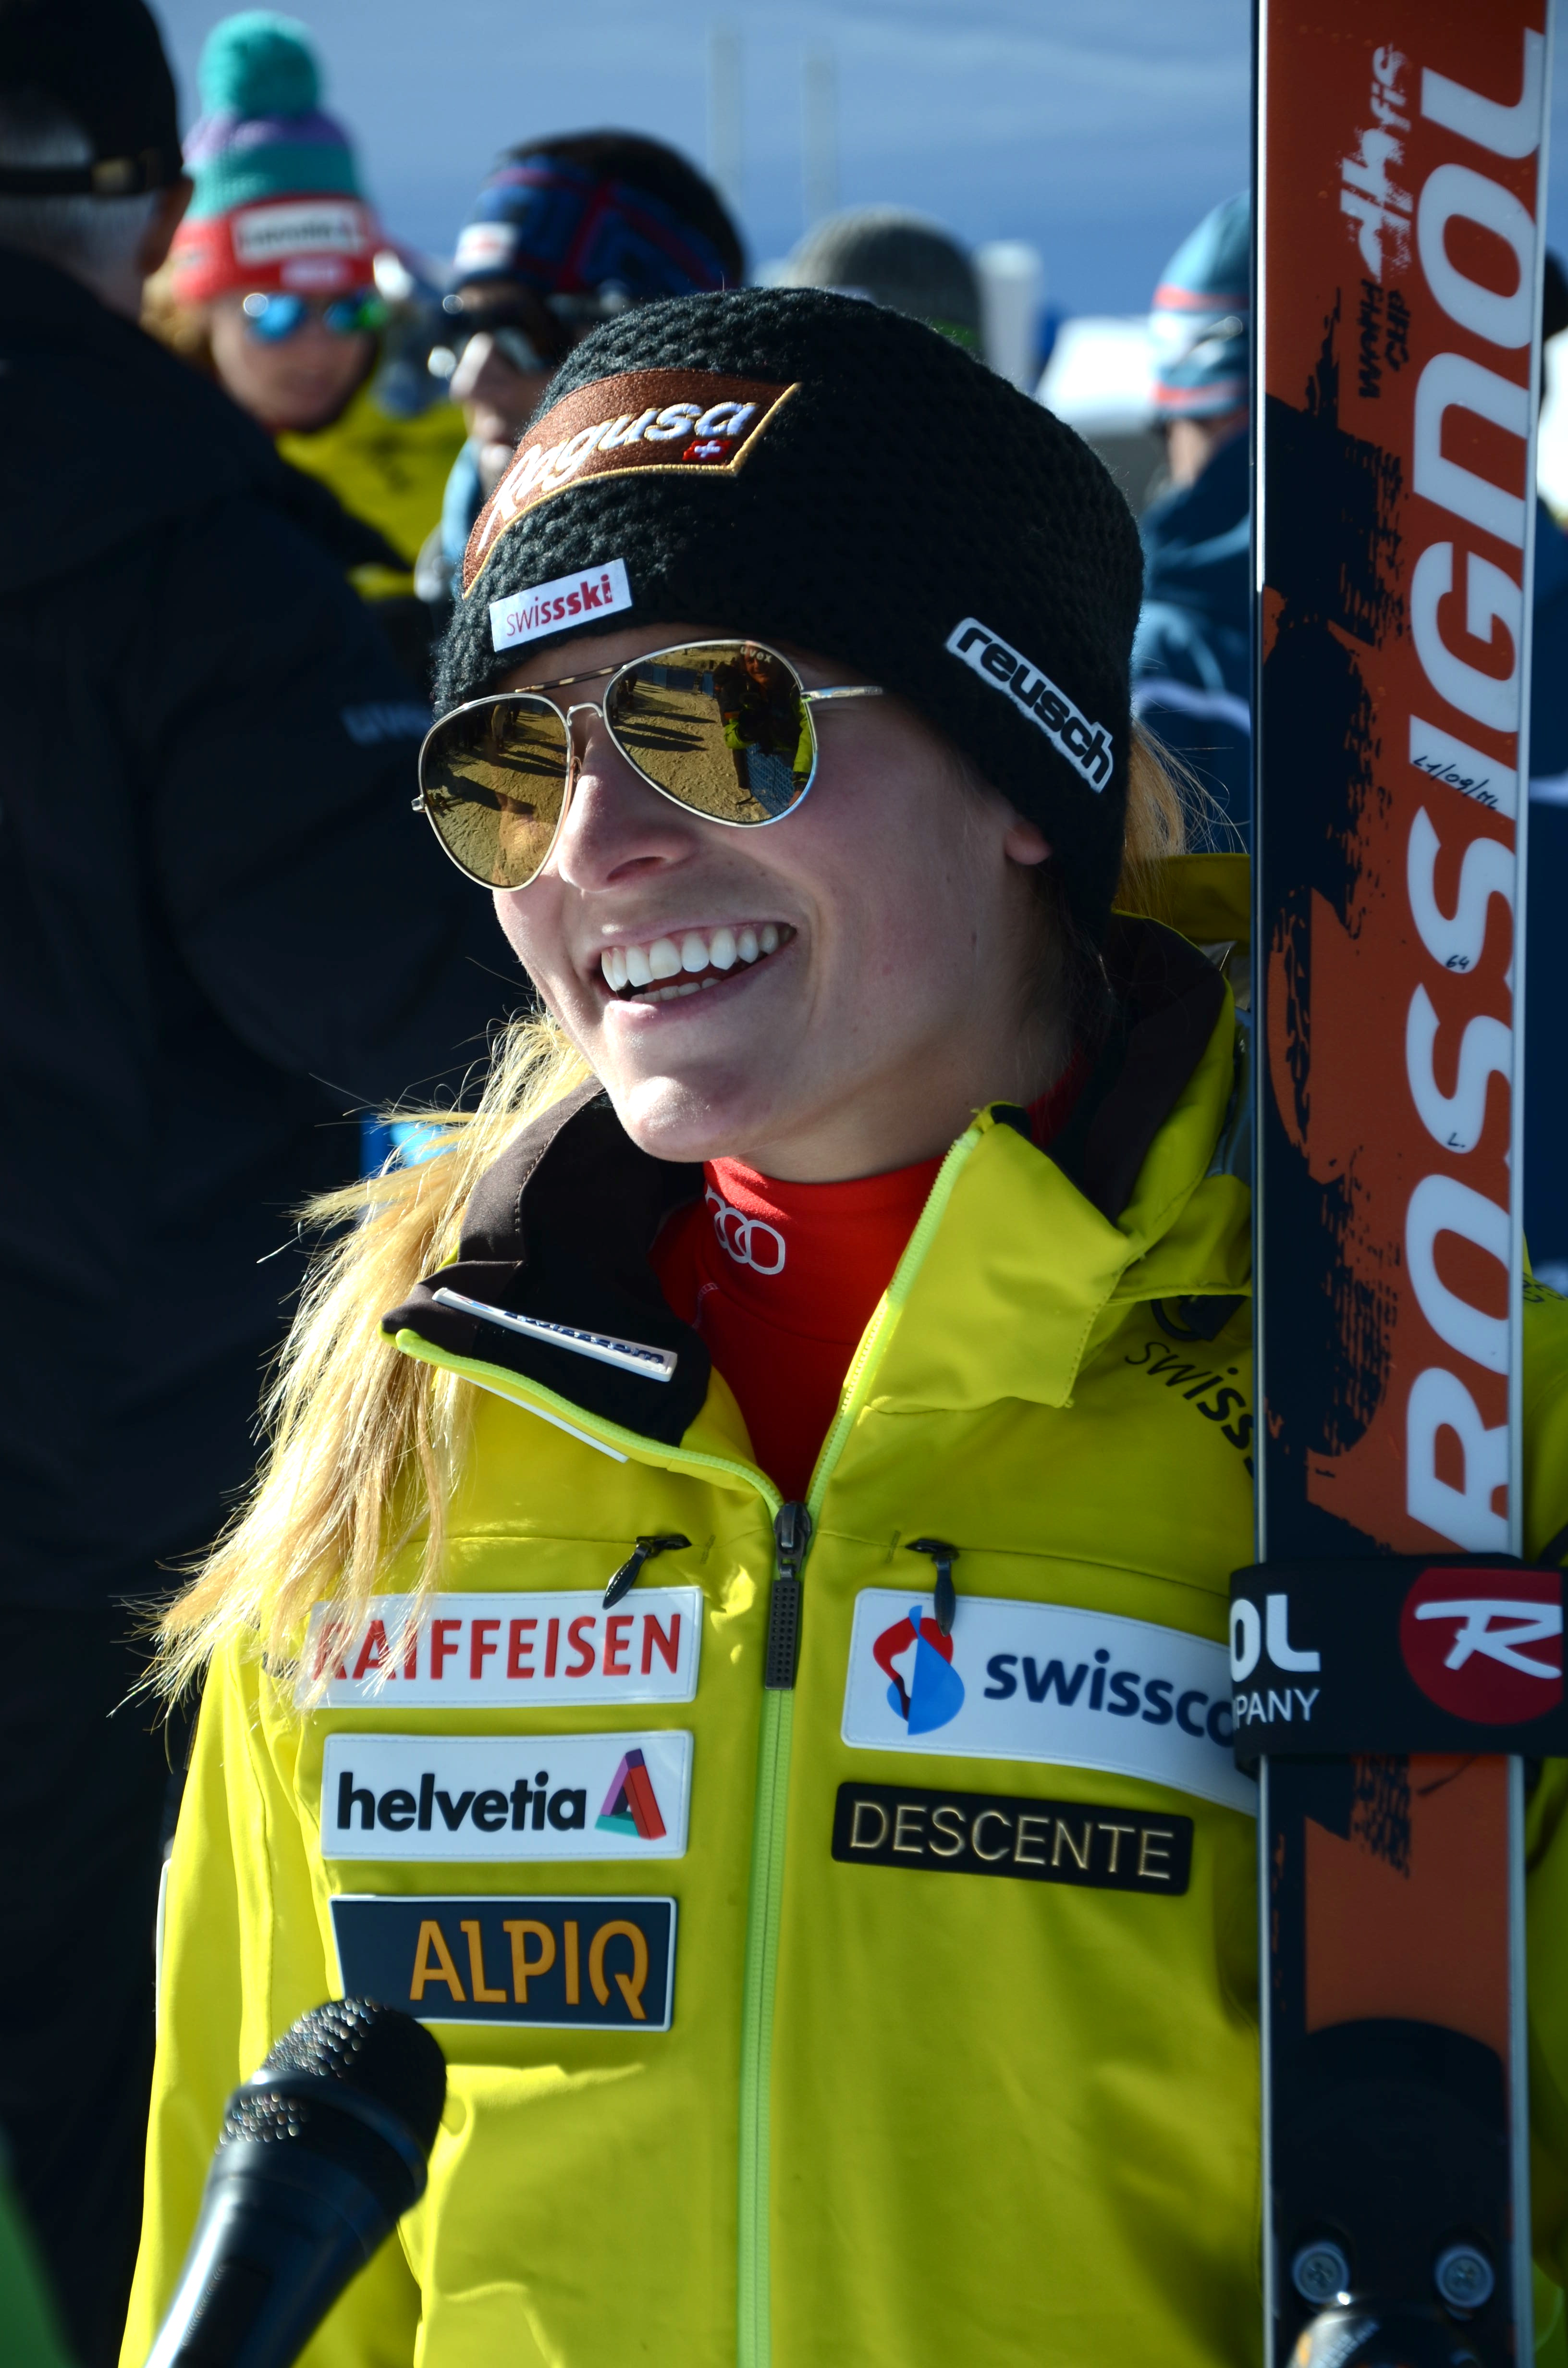 gut fastest in first training run on raptor skiracing